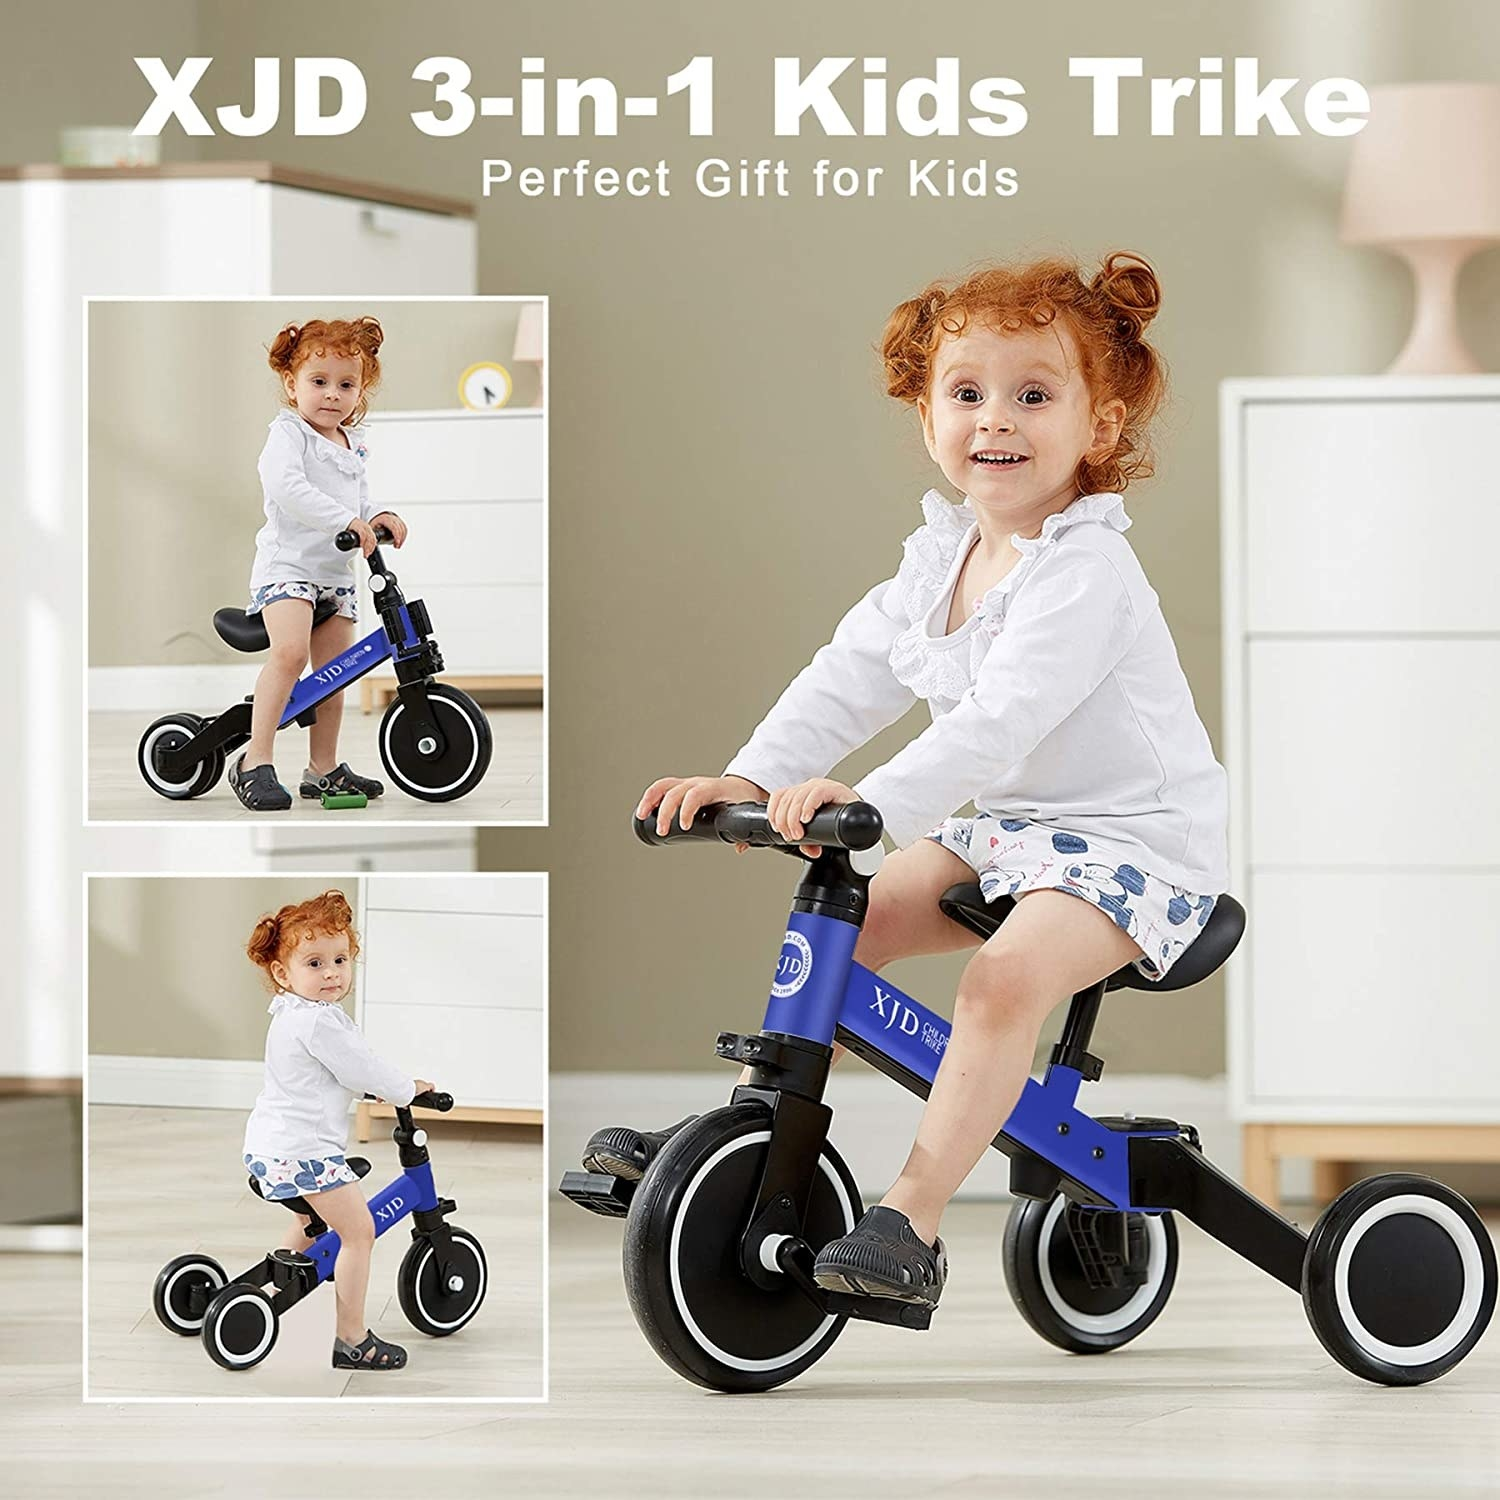 Model riding the bike and showing the different modes